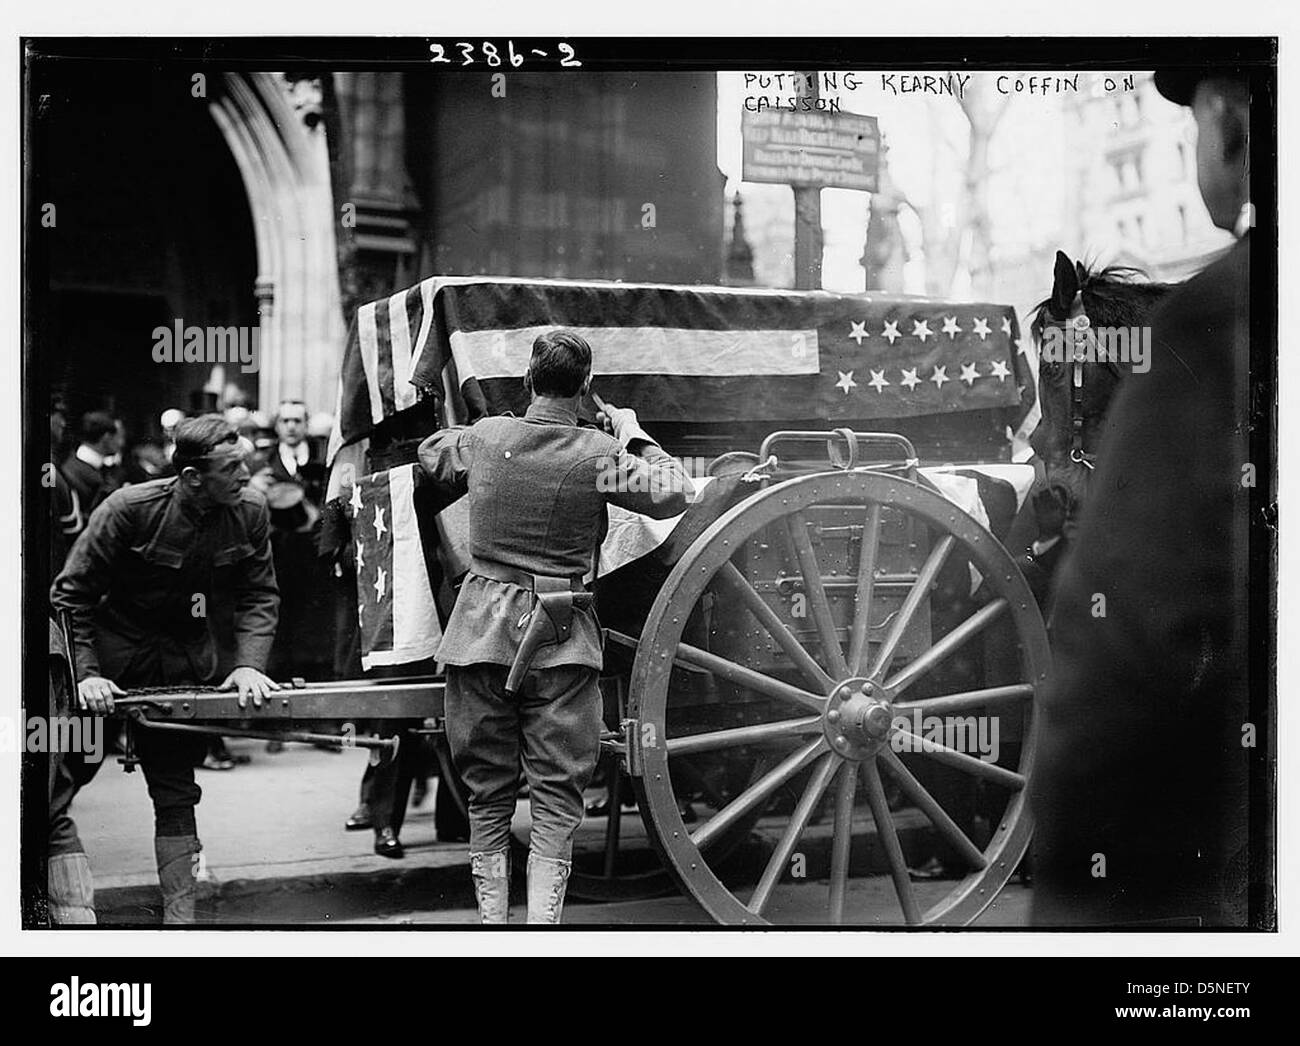 Putting Kearny coffin on caisson (LOC) - Stock Image